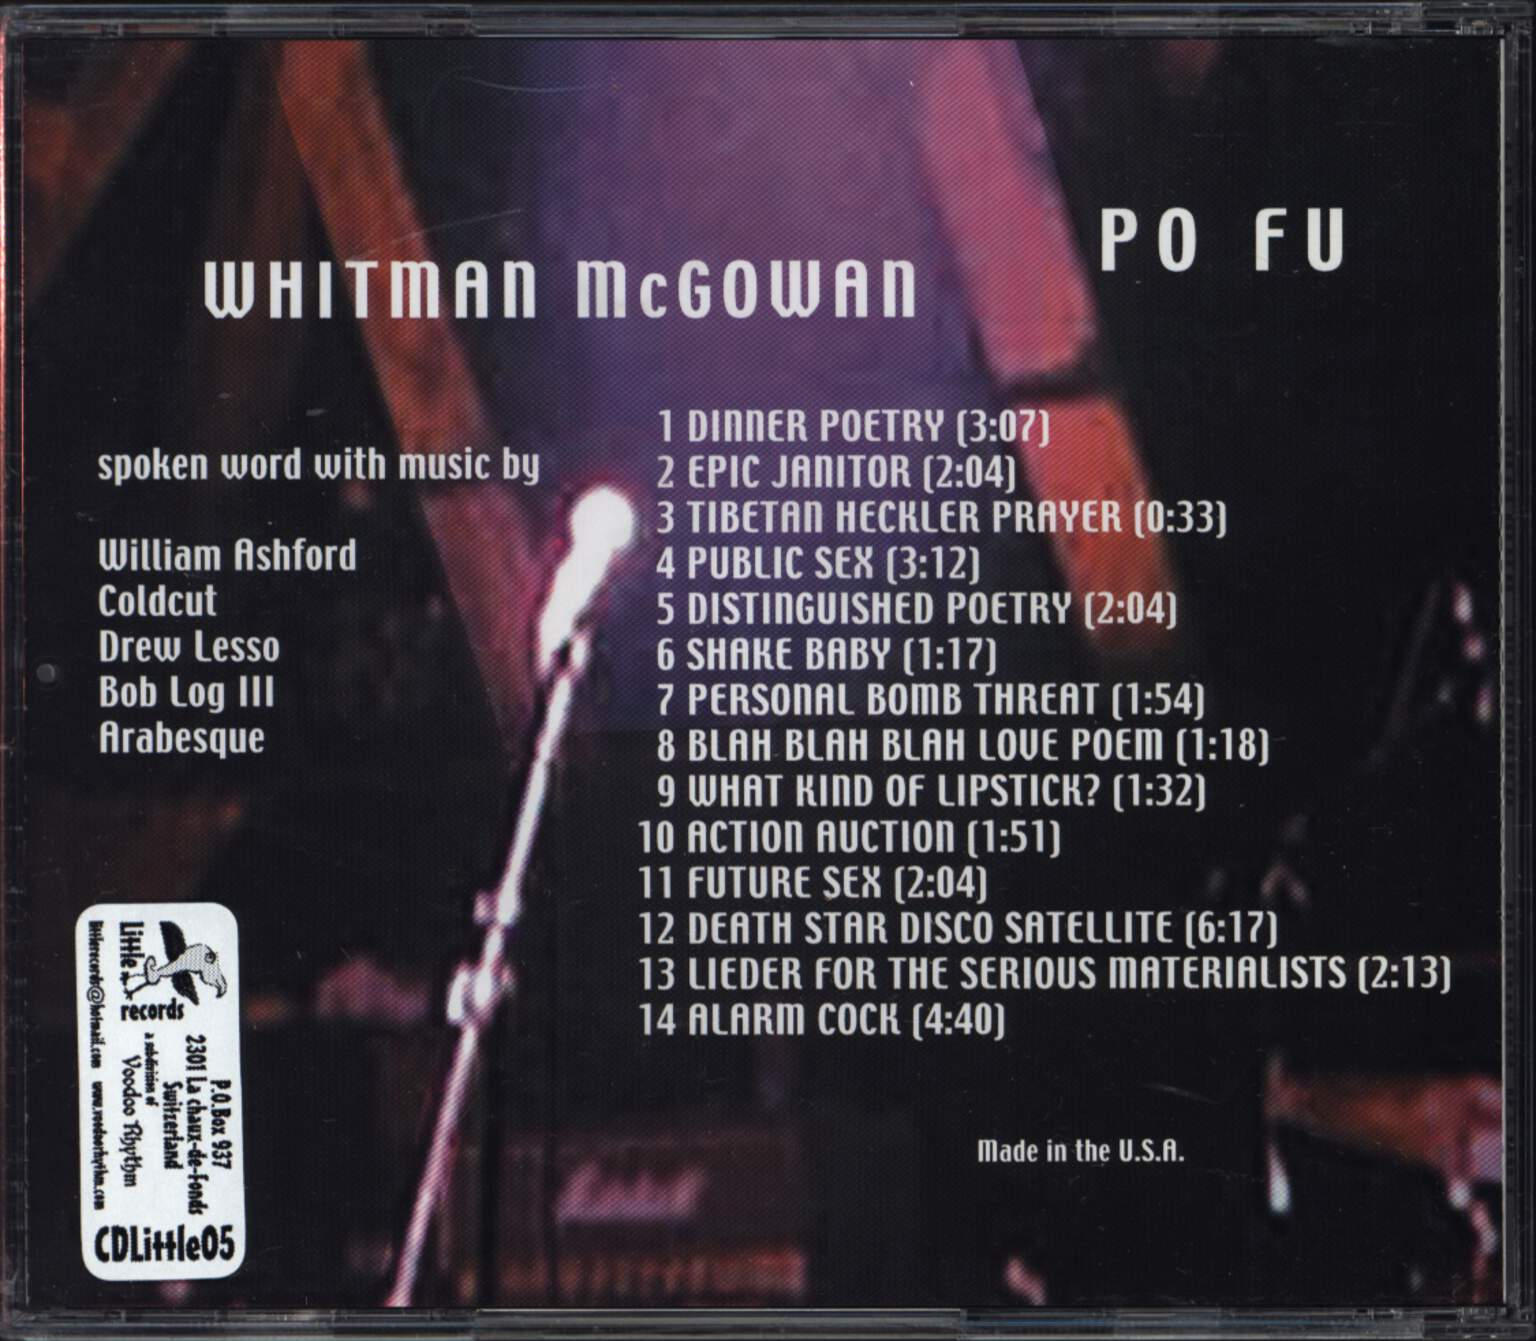 Whitman McGowan: Po Fu, CD